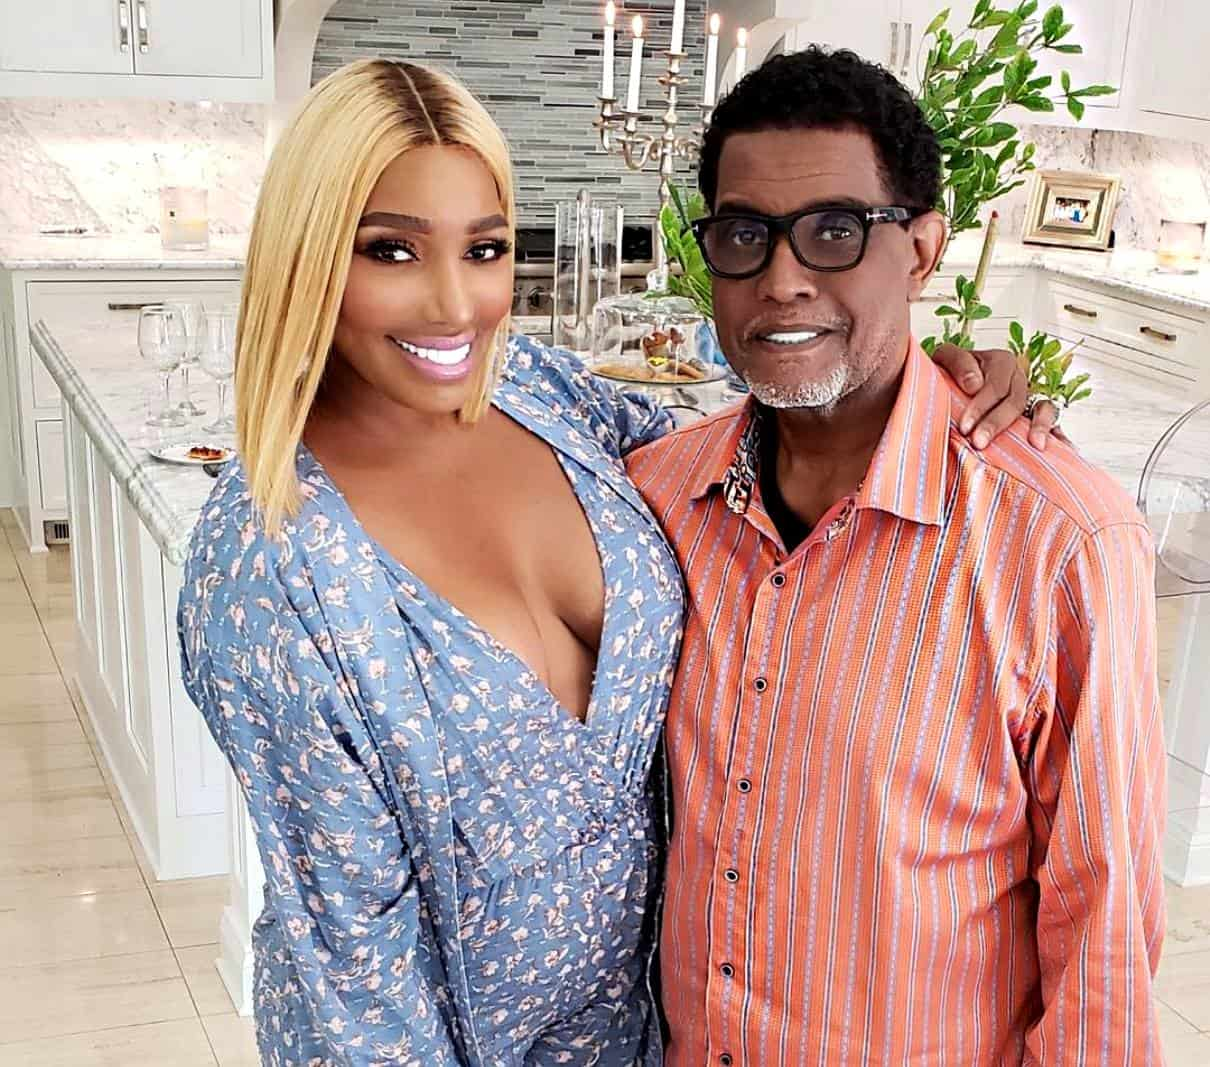 RHOA Nene Leakes and Gregg Leakes cancer update